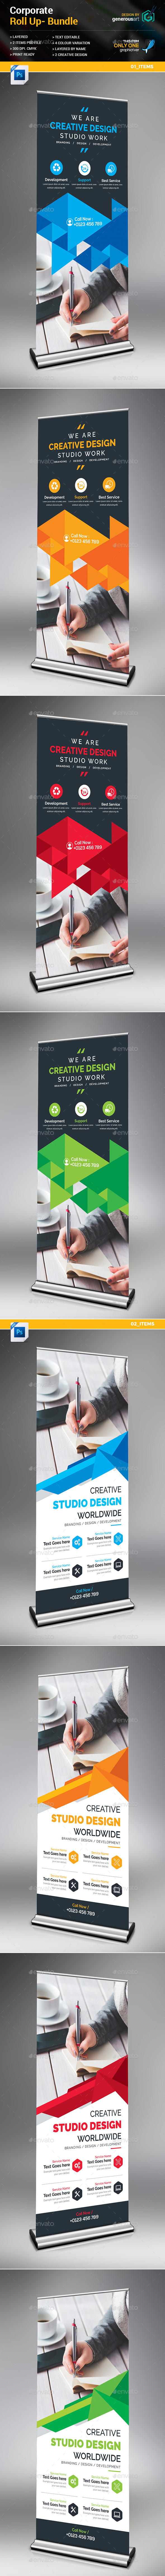 Roll-Up Banner 2 in 1 - Signage Print Templates